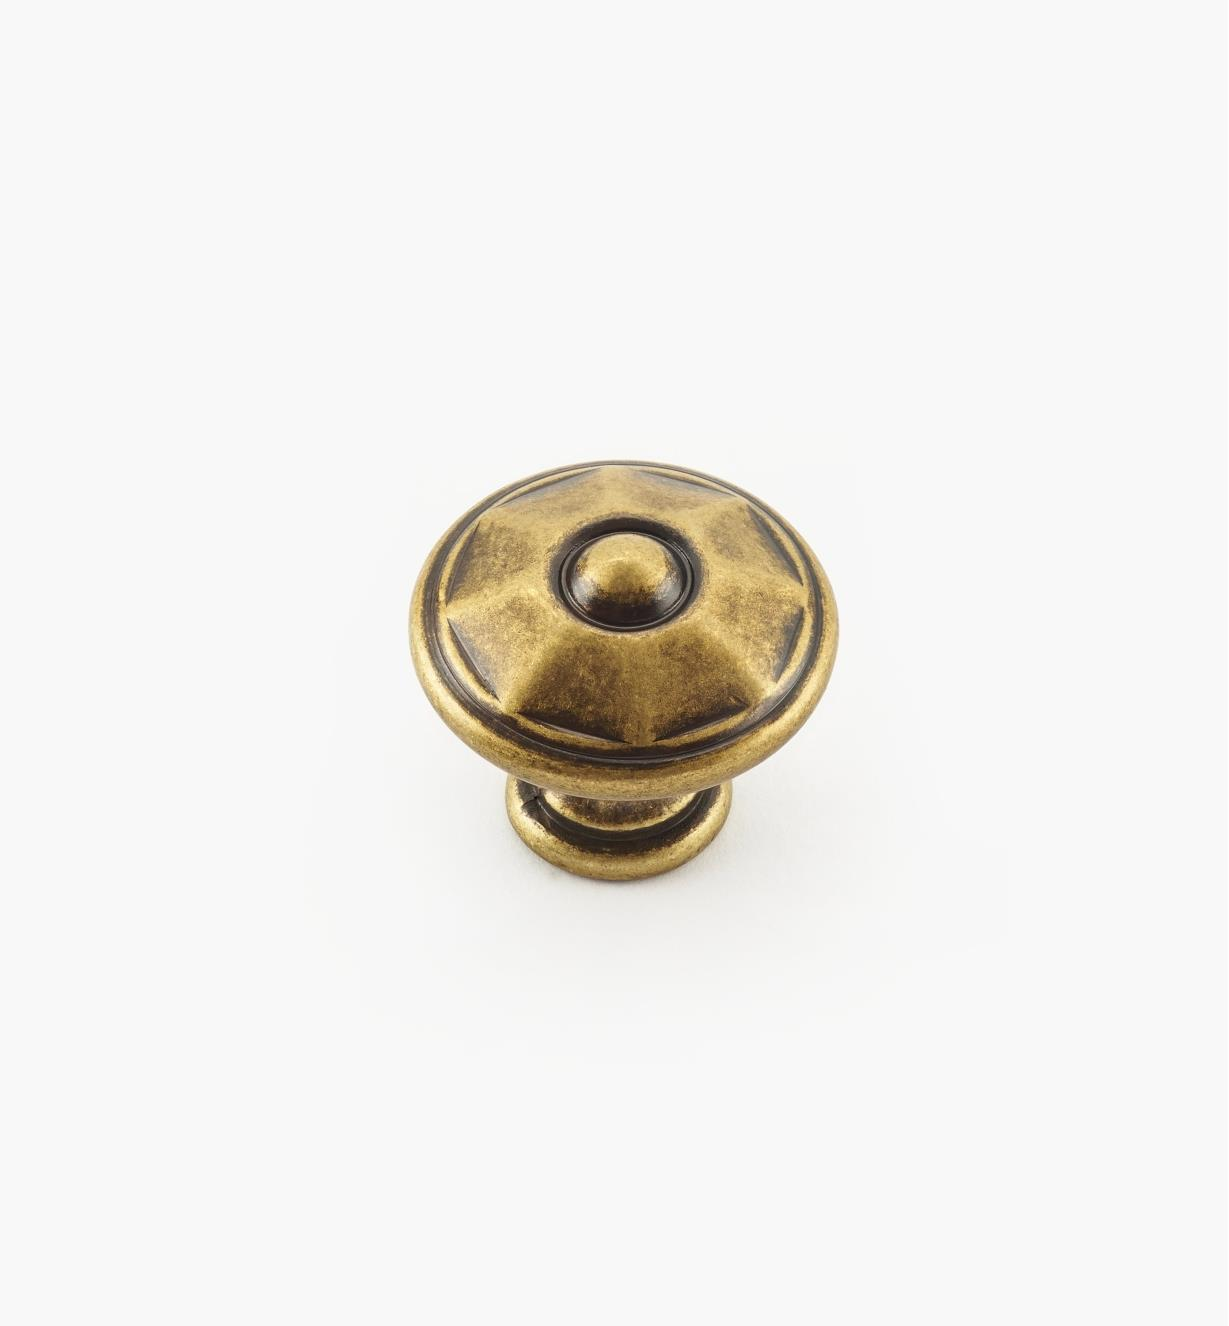 01A2240 - Faceted Brass Knob, 25mm × 22mm